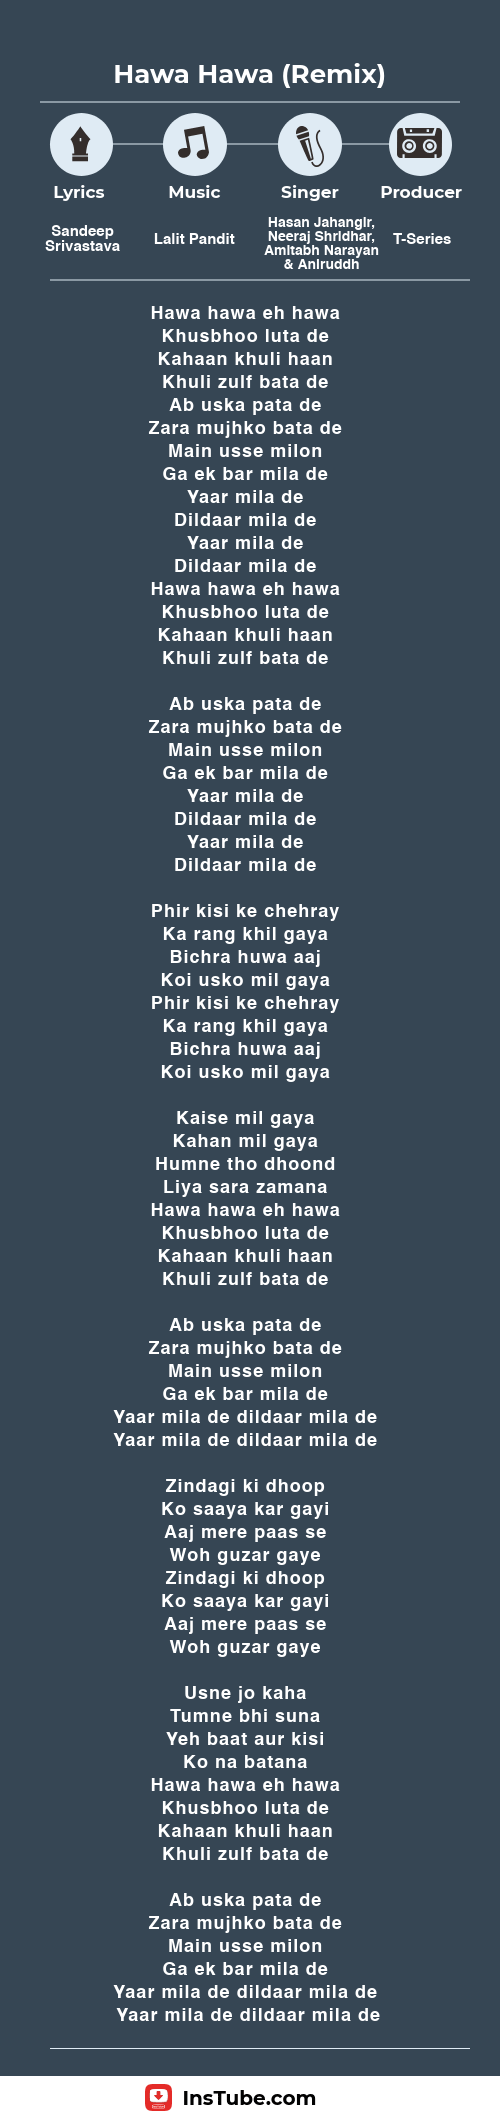 Lyrics Hawa Hawa Remix version in Chaalis Chauraasi